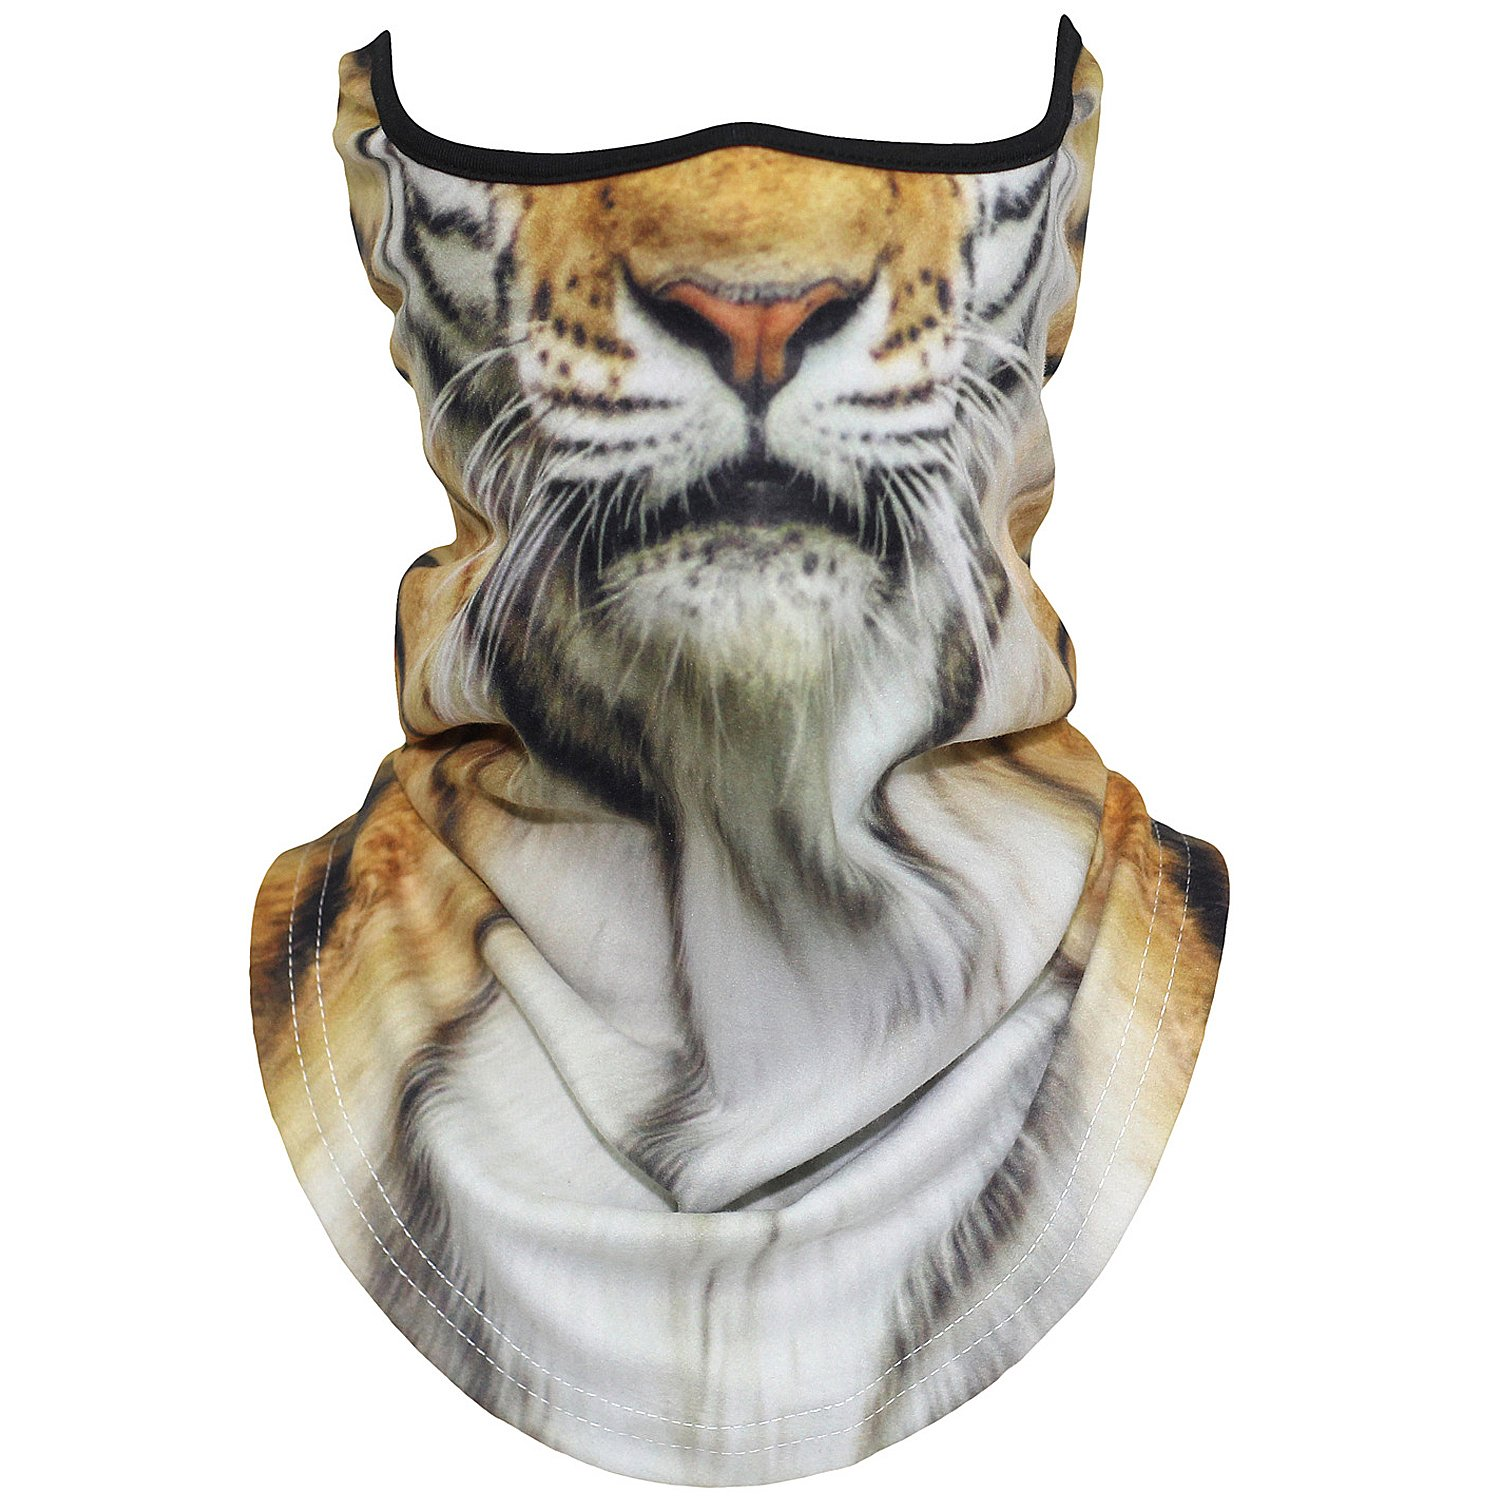 AXBXCX Animal 3D Prints Neck Gaiter Warmer Half Face Mask Scarf Windproof Dust UV Sun Protection for Skiing Snowboarding Snowmobile Halloween Cosplay Tiger